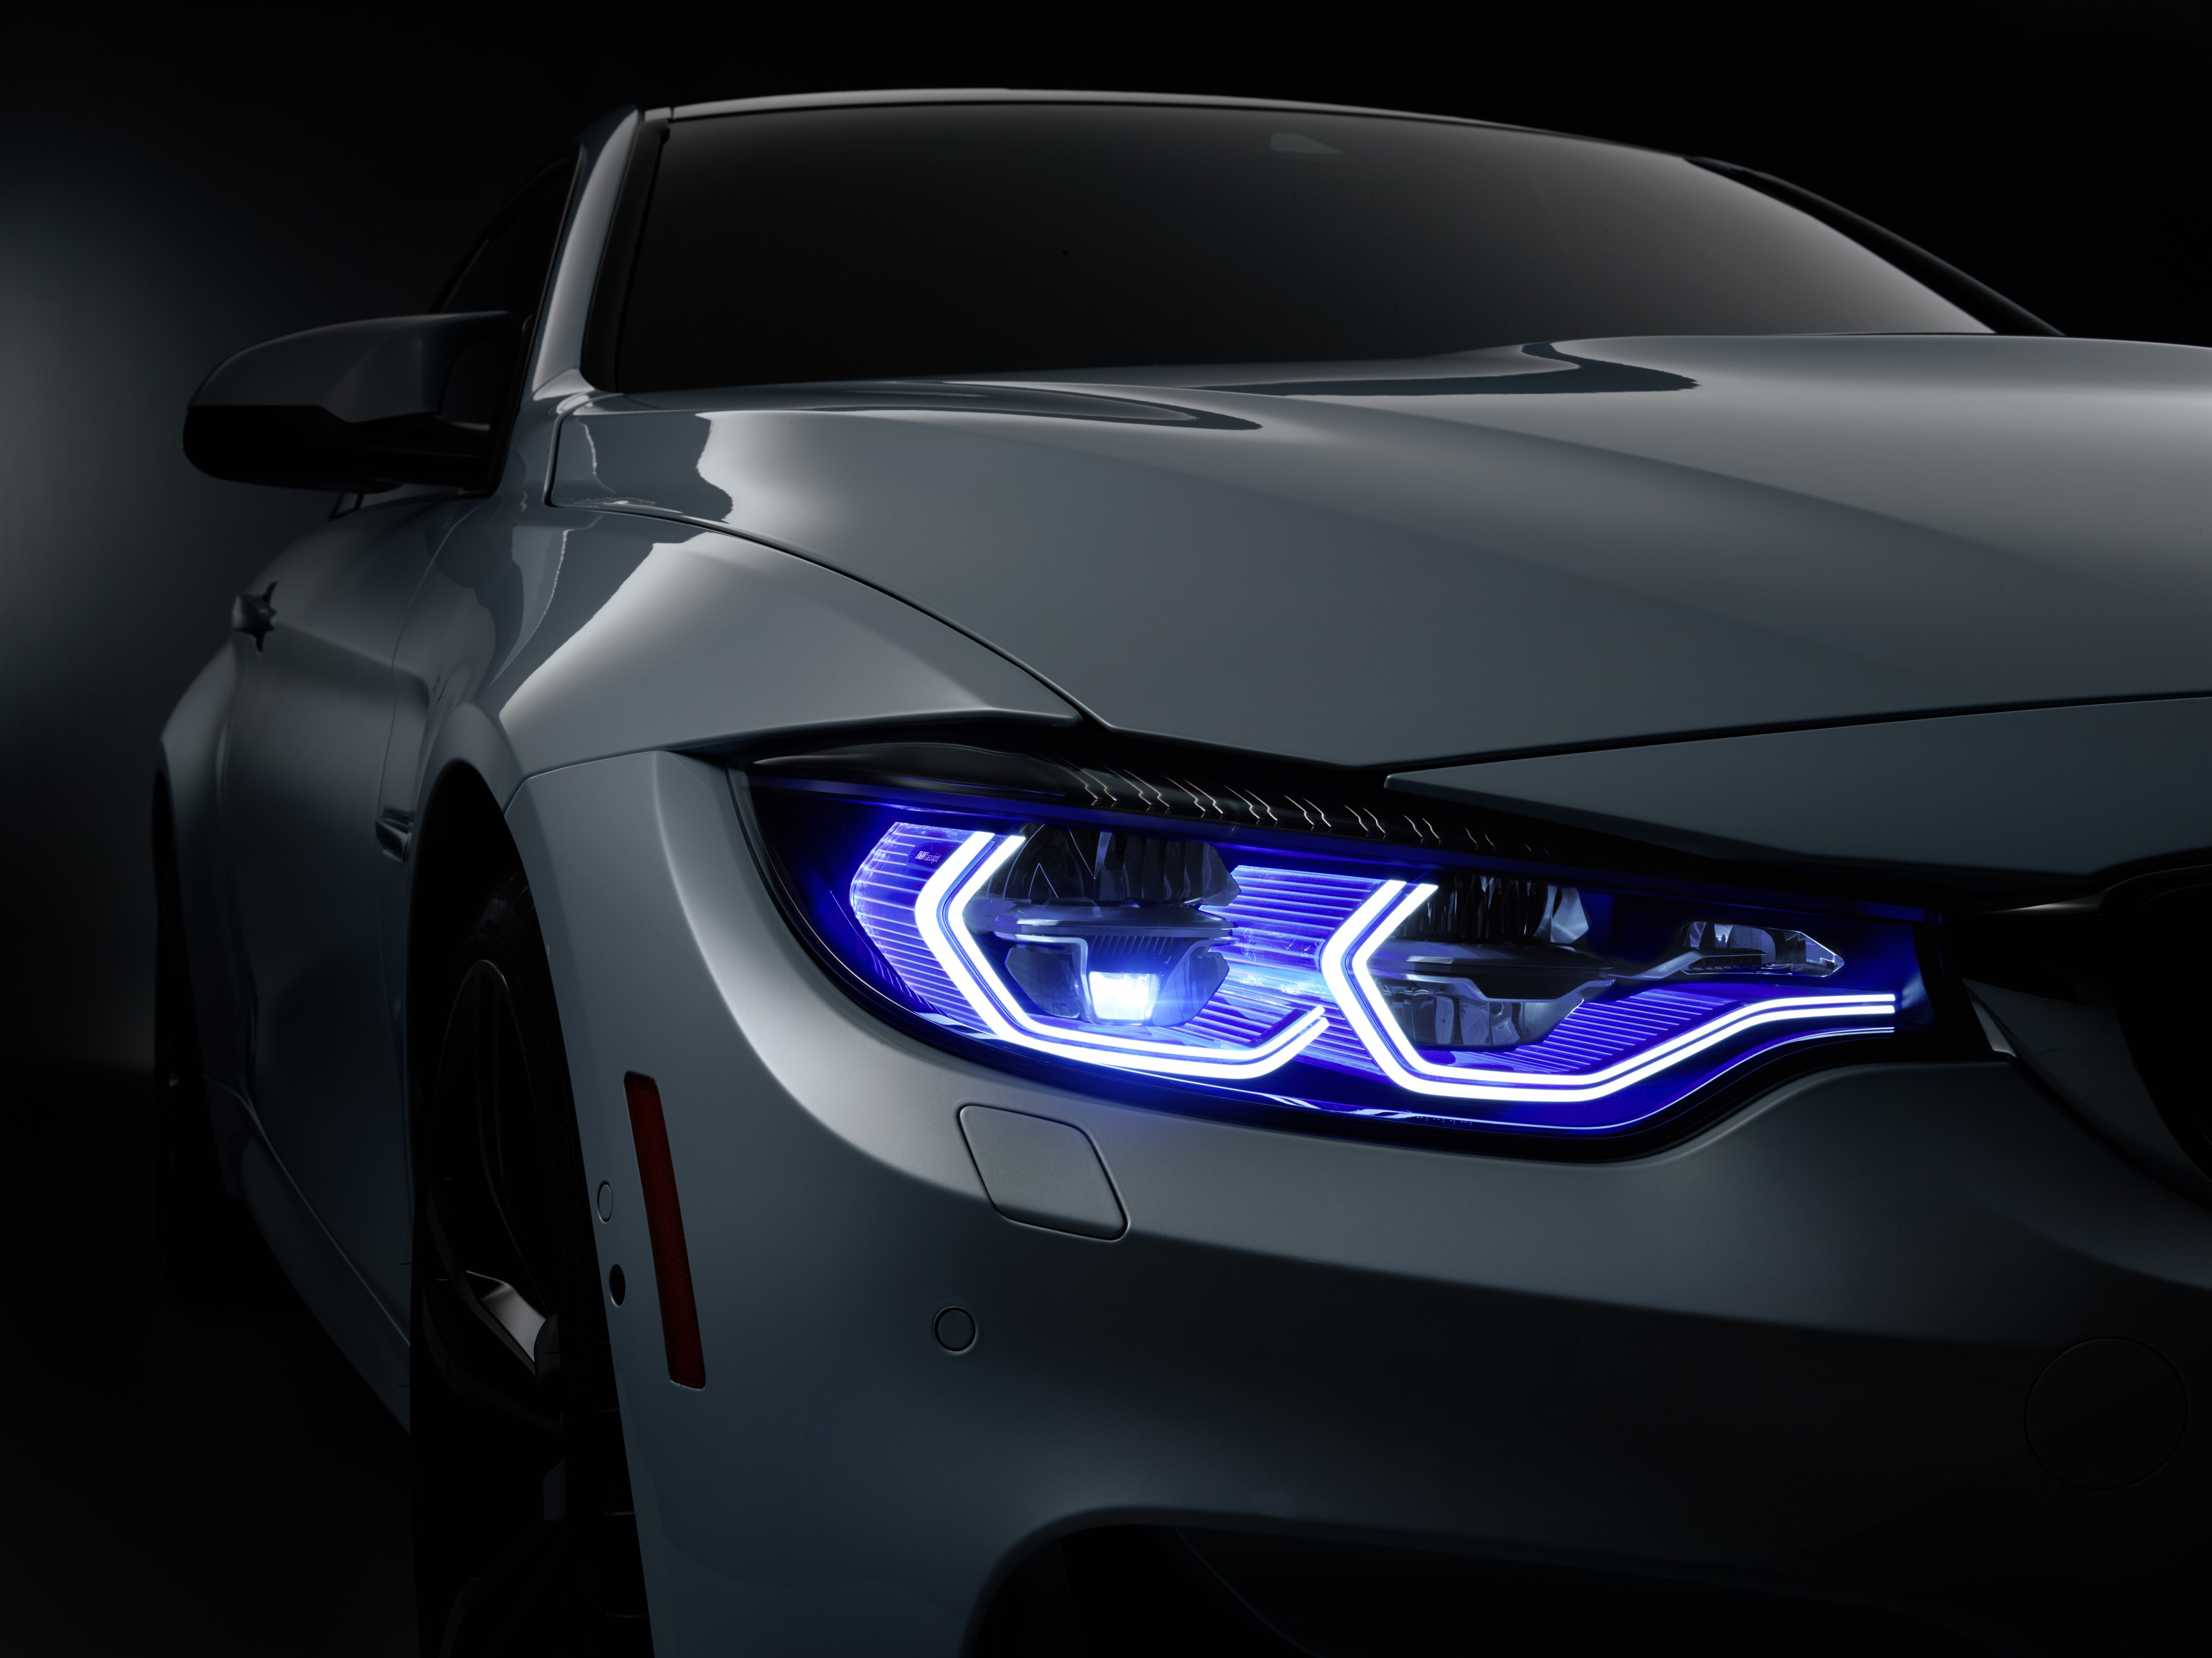 Automotive lighting takes new shape with latest technologies